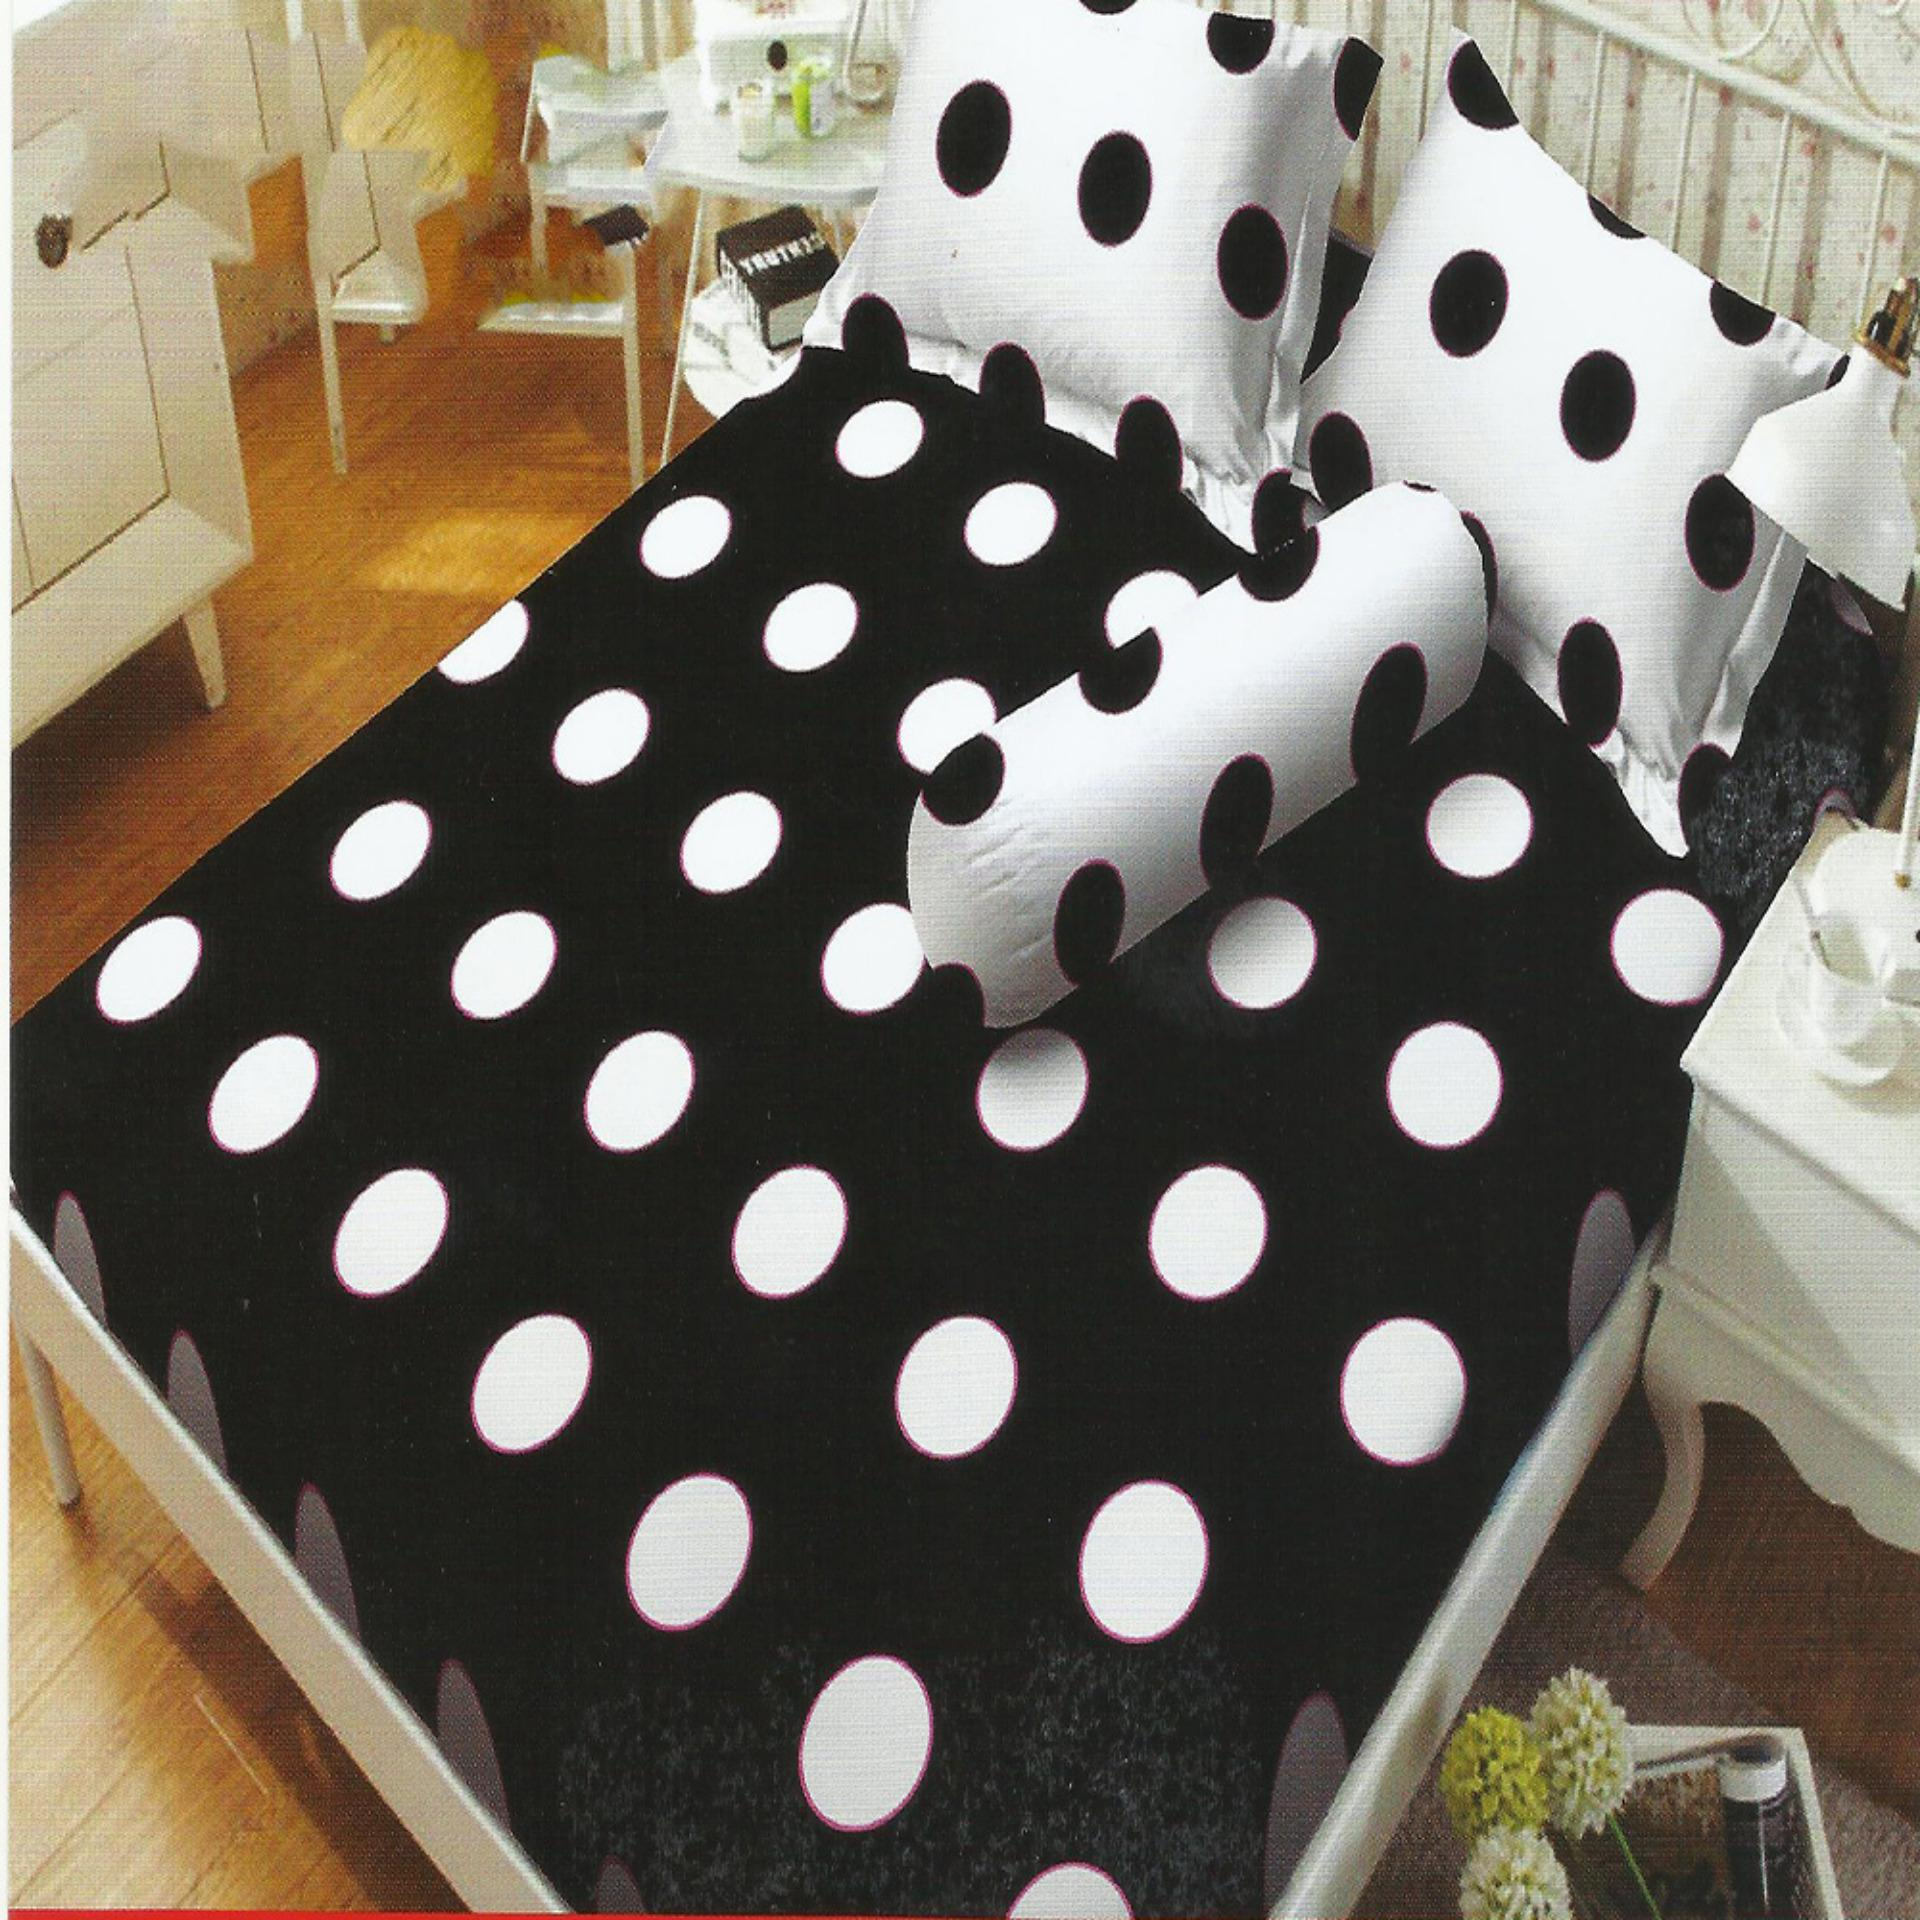 Jual Kintakun Dluxe Sprei Single Motif Brooklyn 120X200 Cm Import